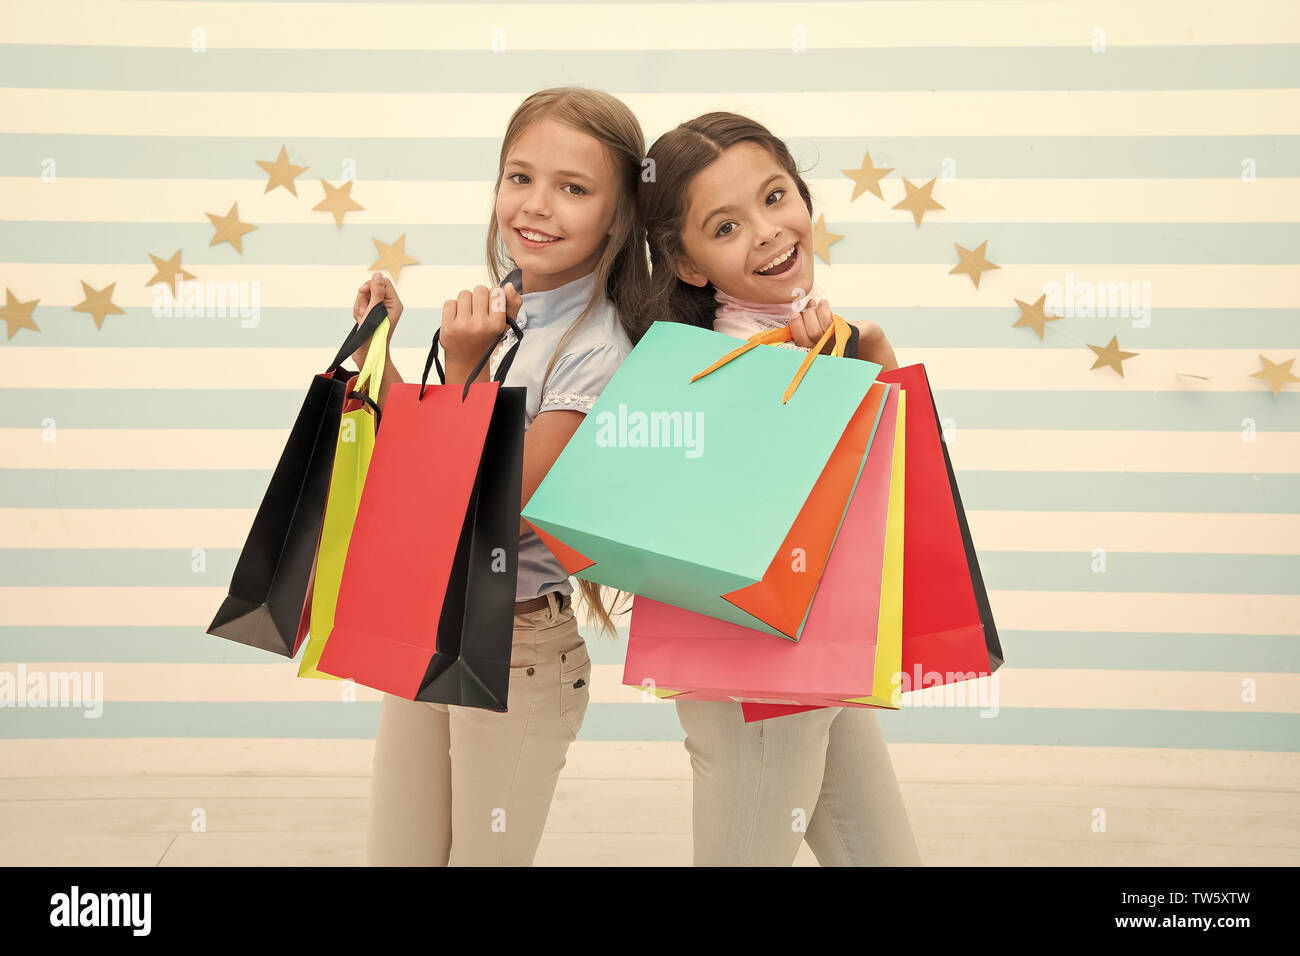 Kids happy carry bunch packages. Shopping with best friend concept. Girls like shopping. Kids happy small girls hold shopping bags. Enjoy shopping wit - Stock Image